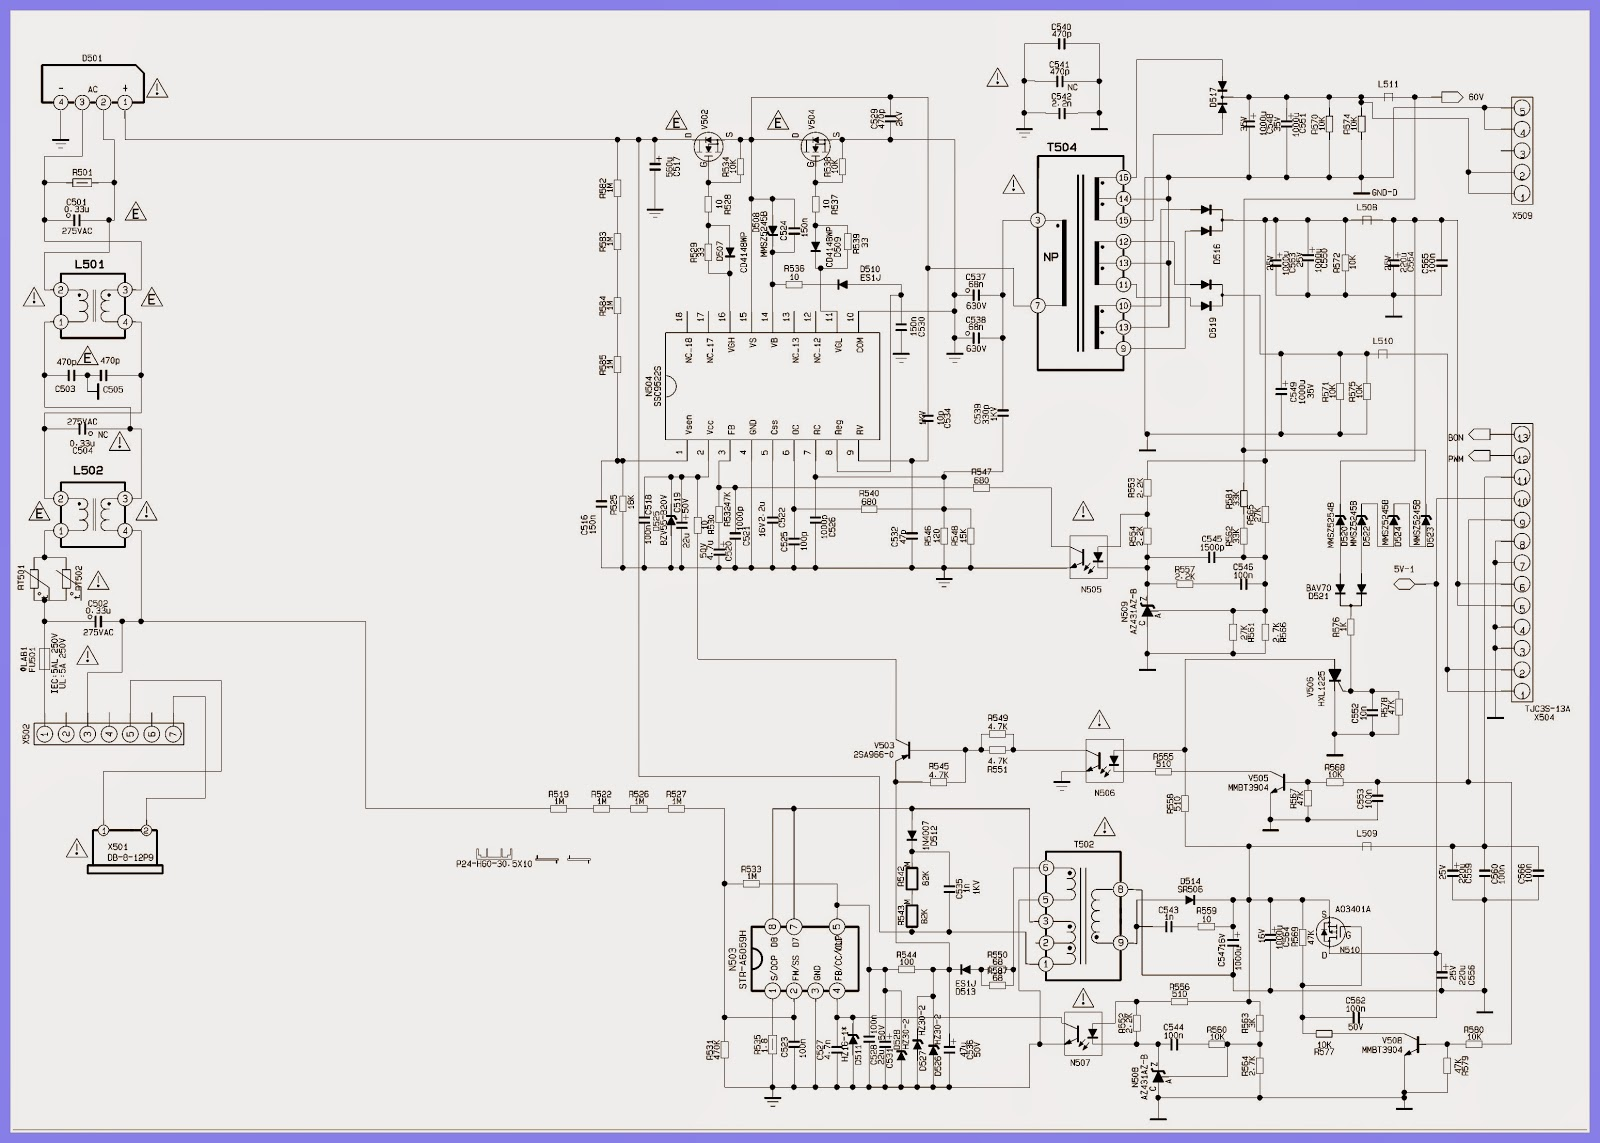 Sanyo Tv Schematic LG TV Schematics ~ Elsavadorla